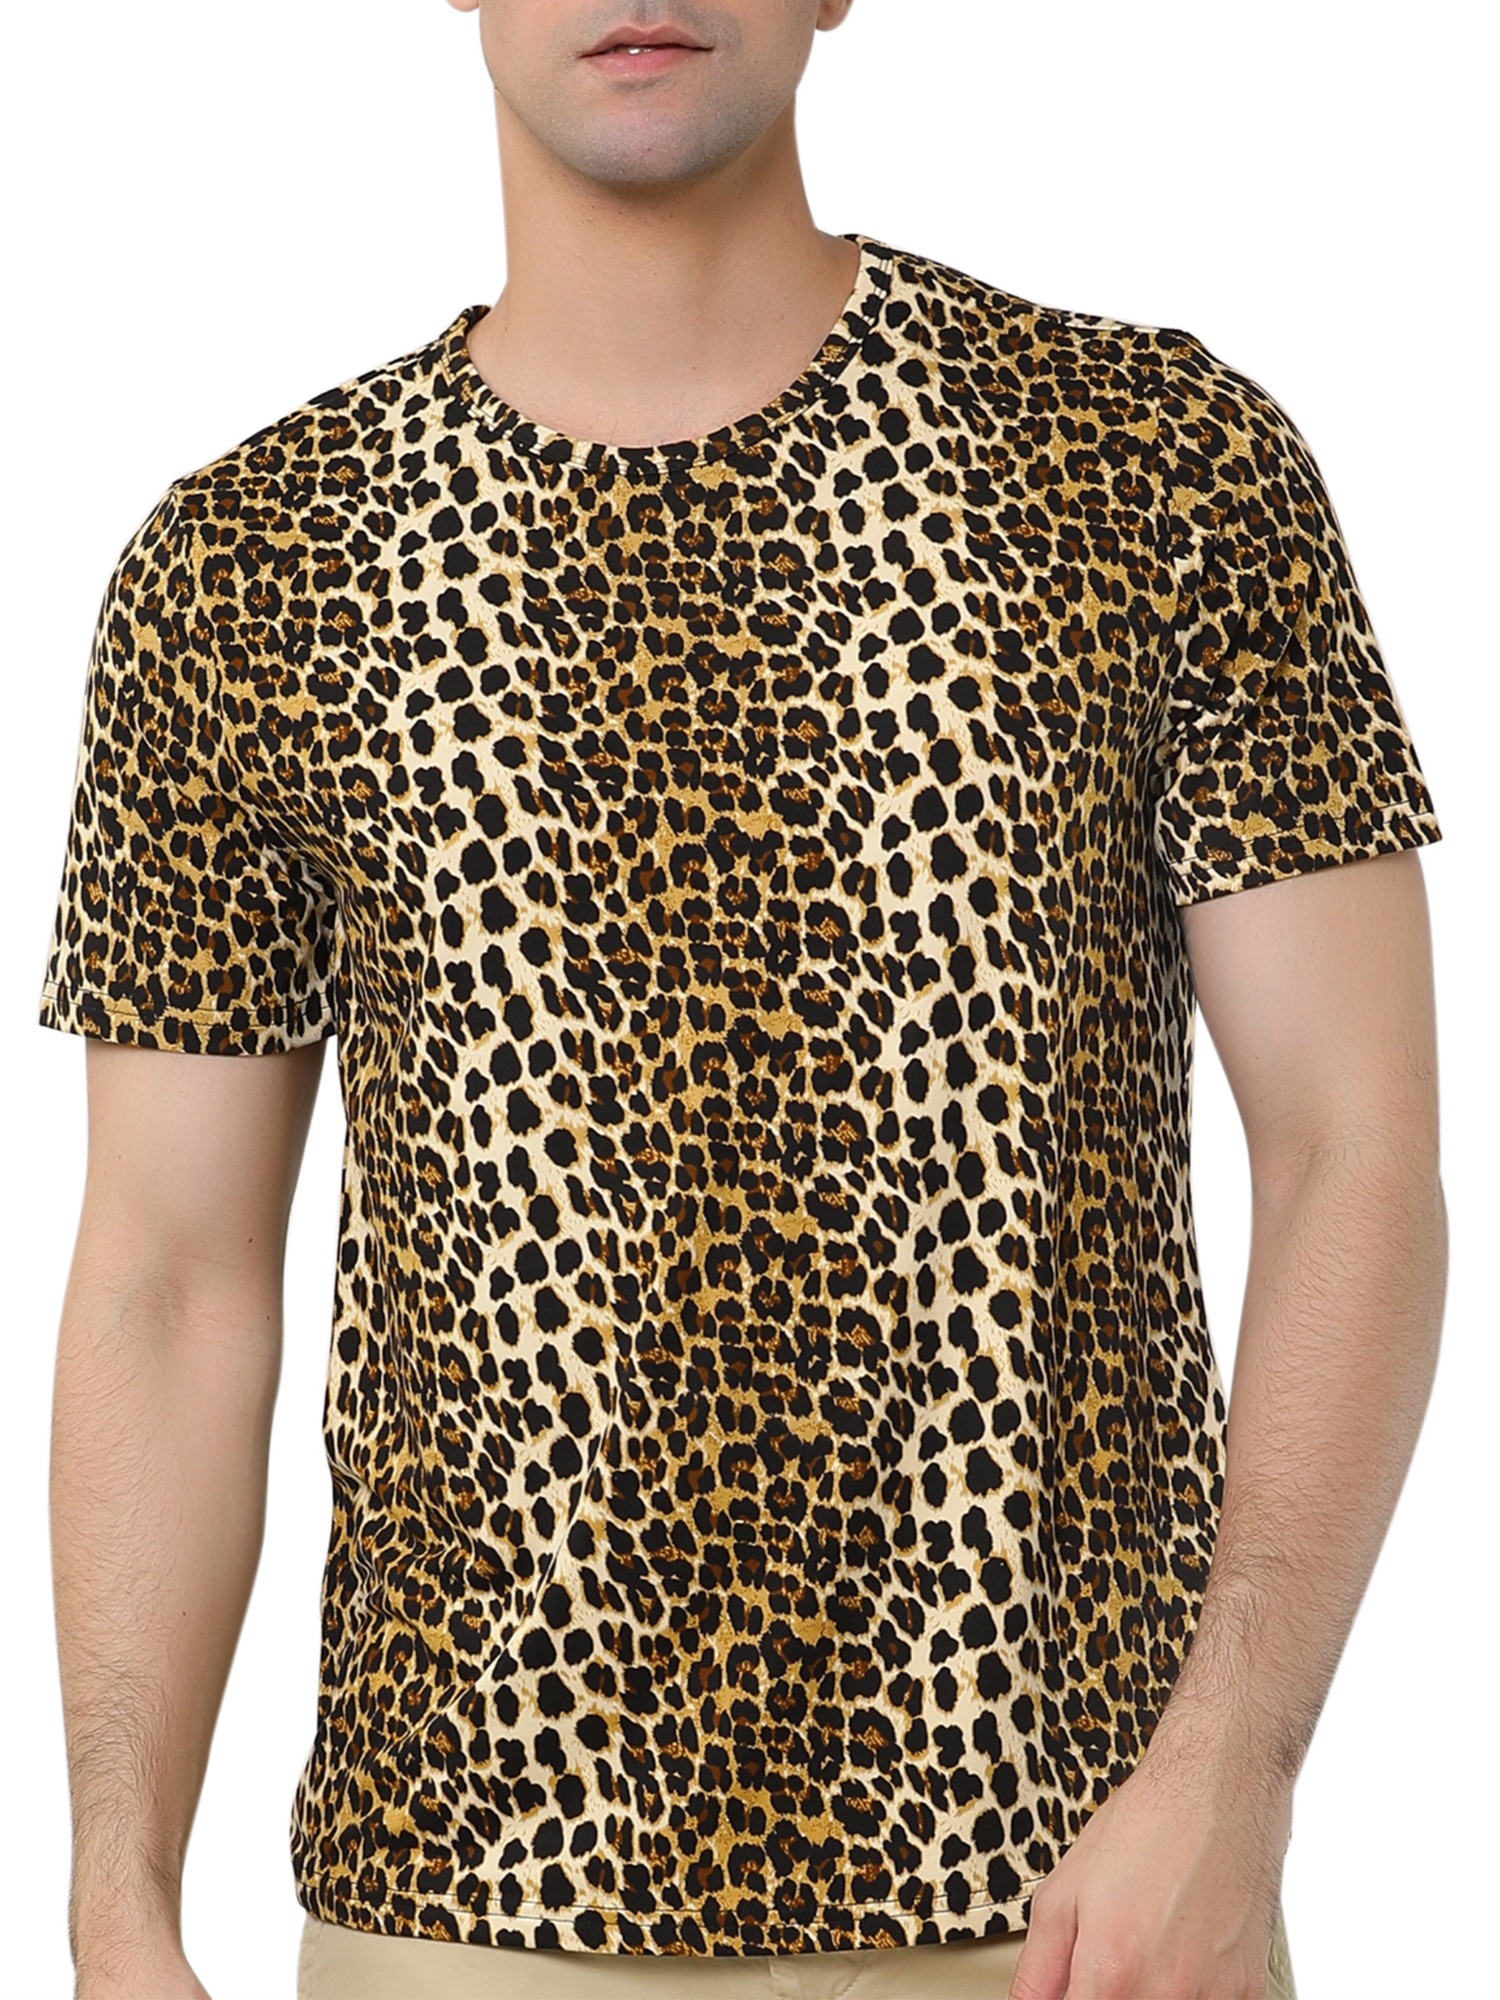 TX07 Mens Stylish Leopard Prints Slim Summer T-shirt Brown S (US 34)